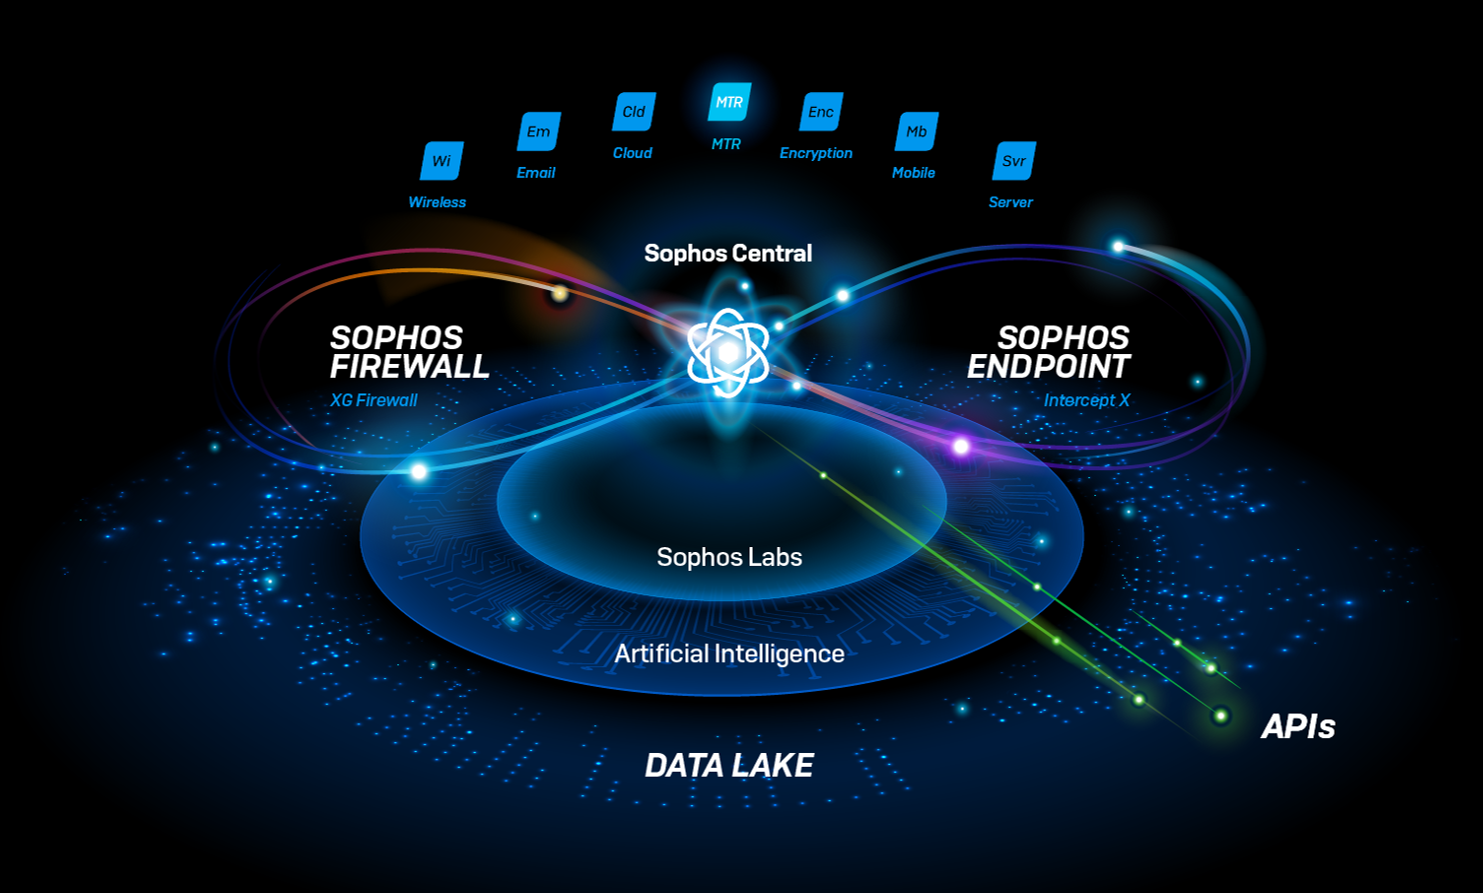 Sophos XDR: Extended response & advanced AI for the whole network